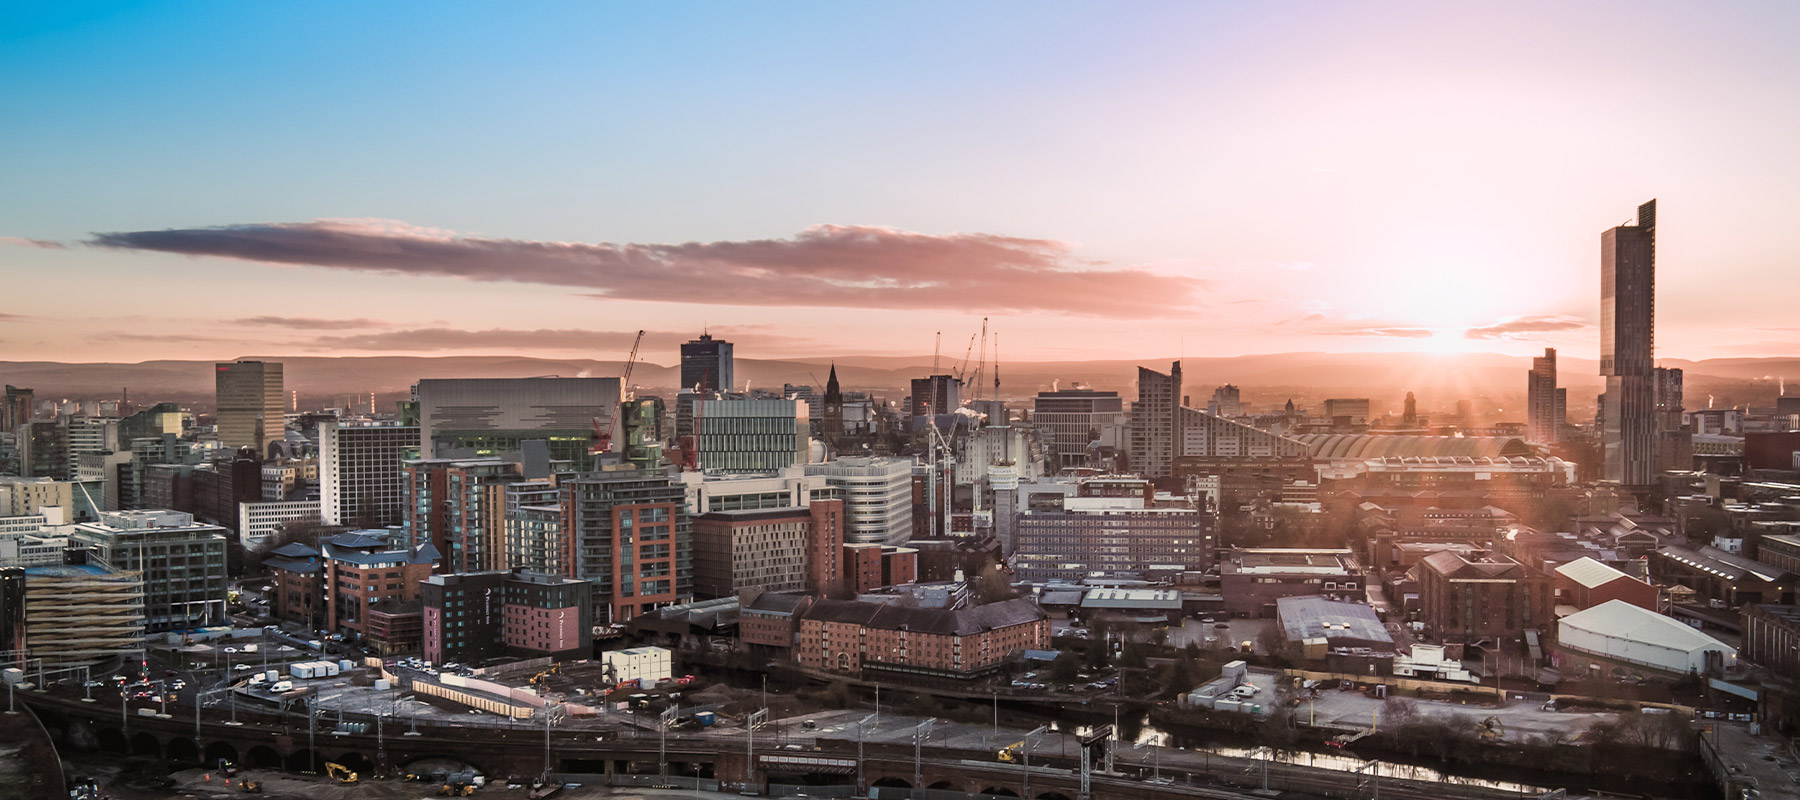 Sunset aerial view of Manchester city centre